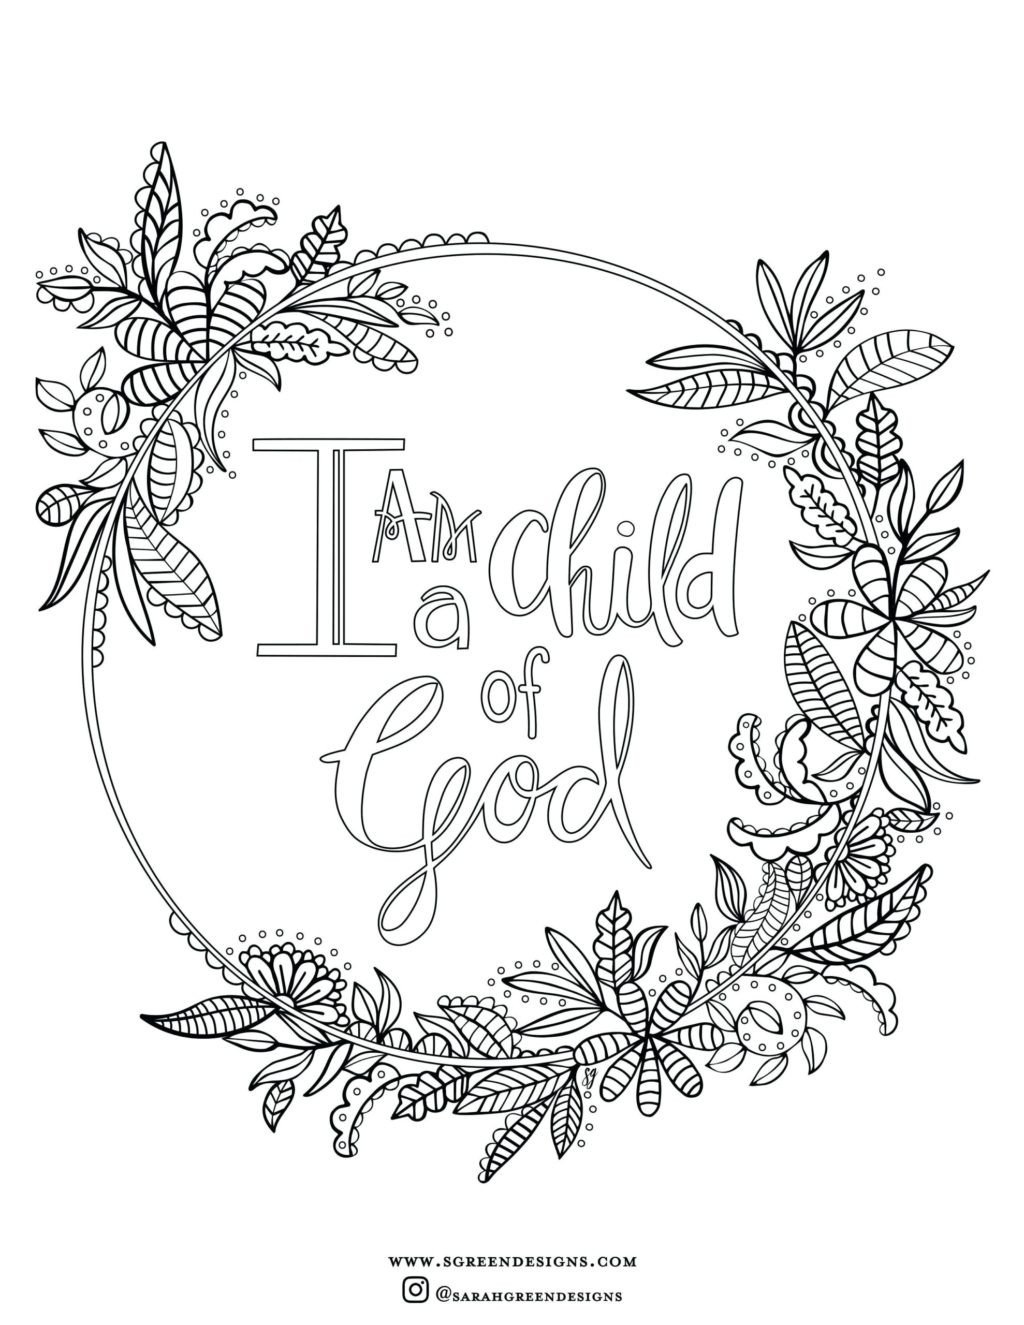 Free Printable Religious Worksheets Worksheet Free Printable Religious Coloring Pages Full